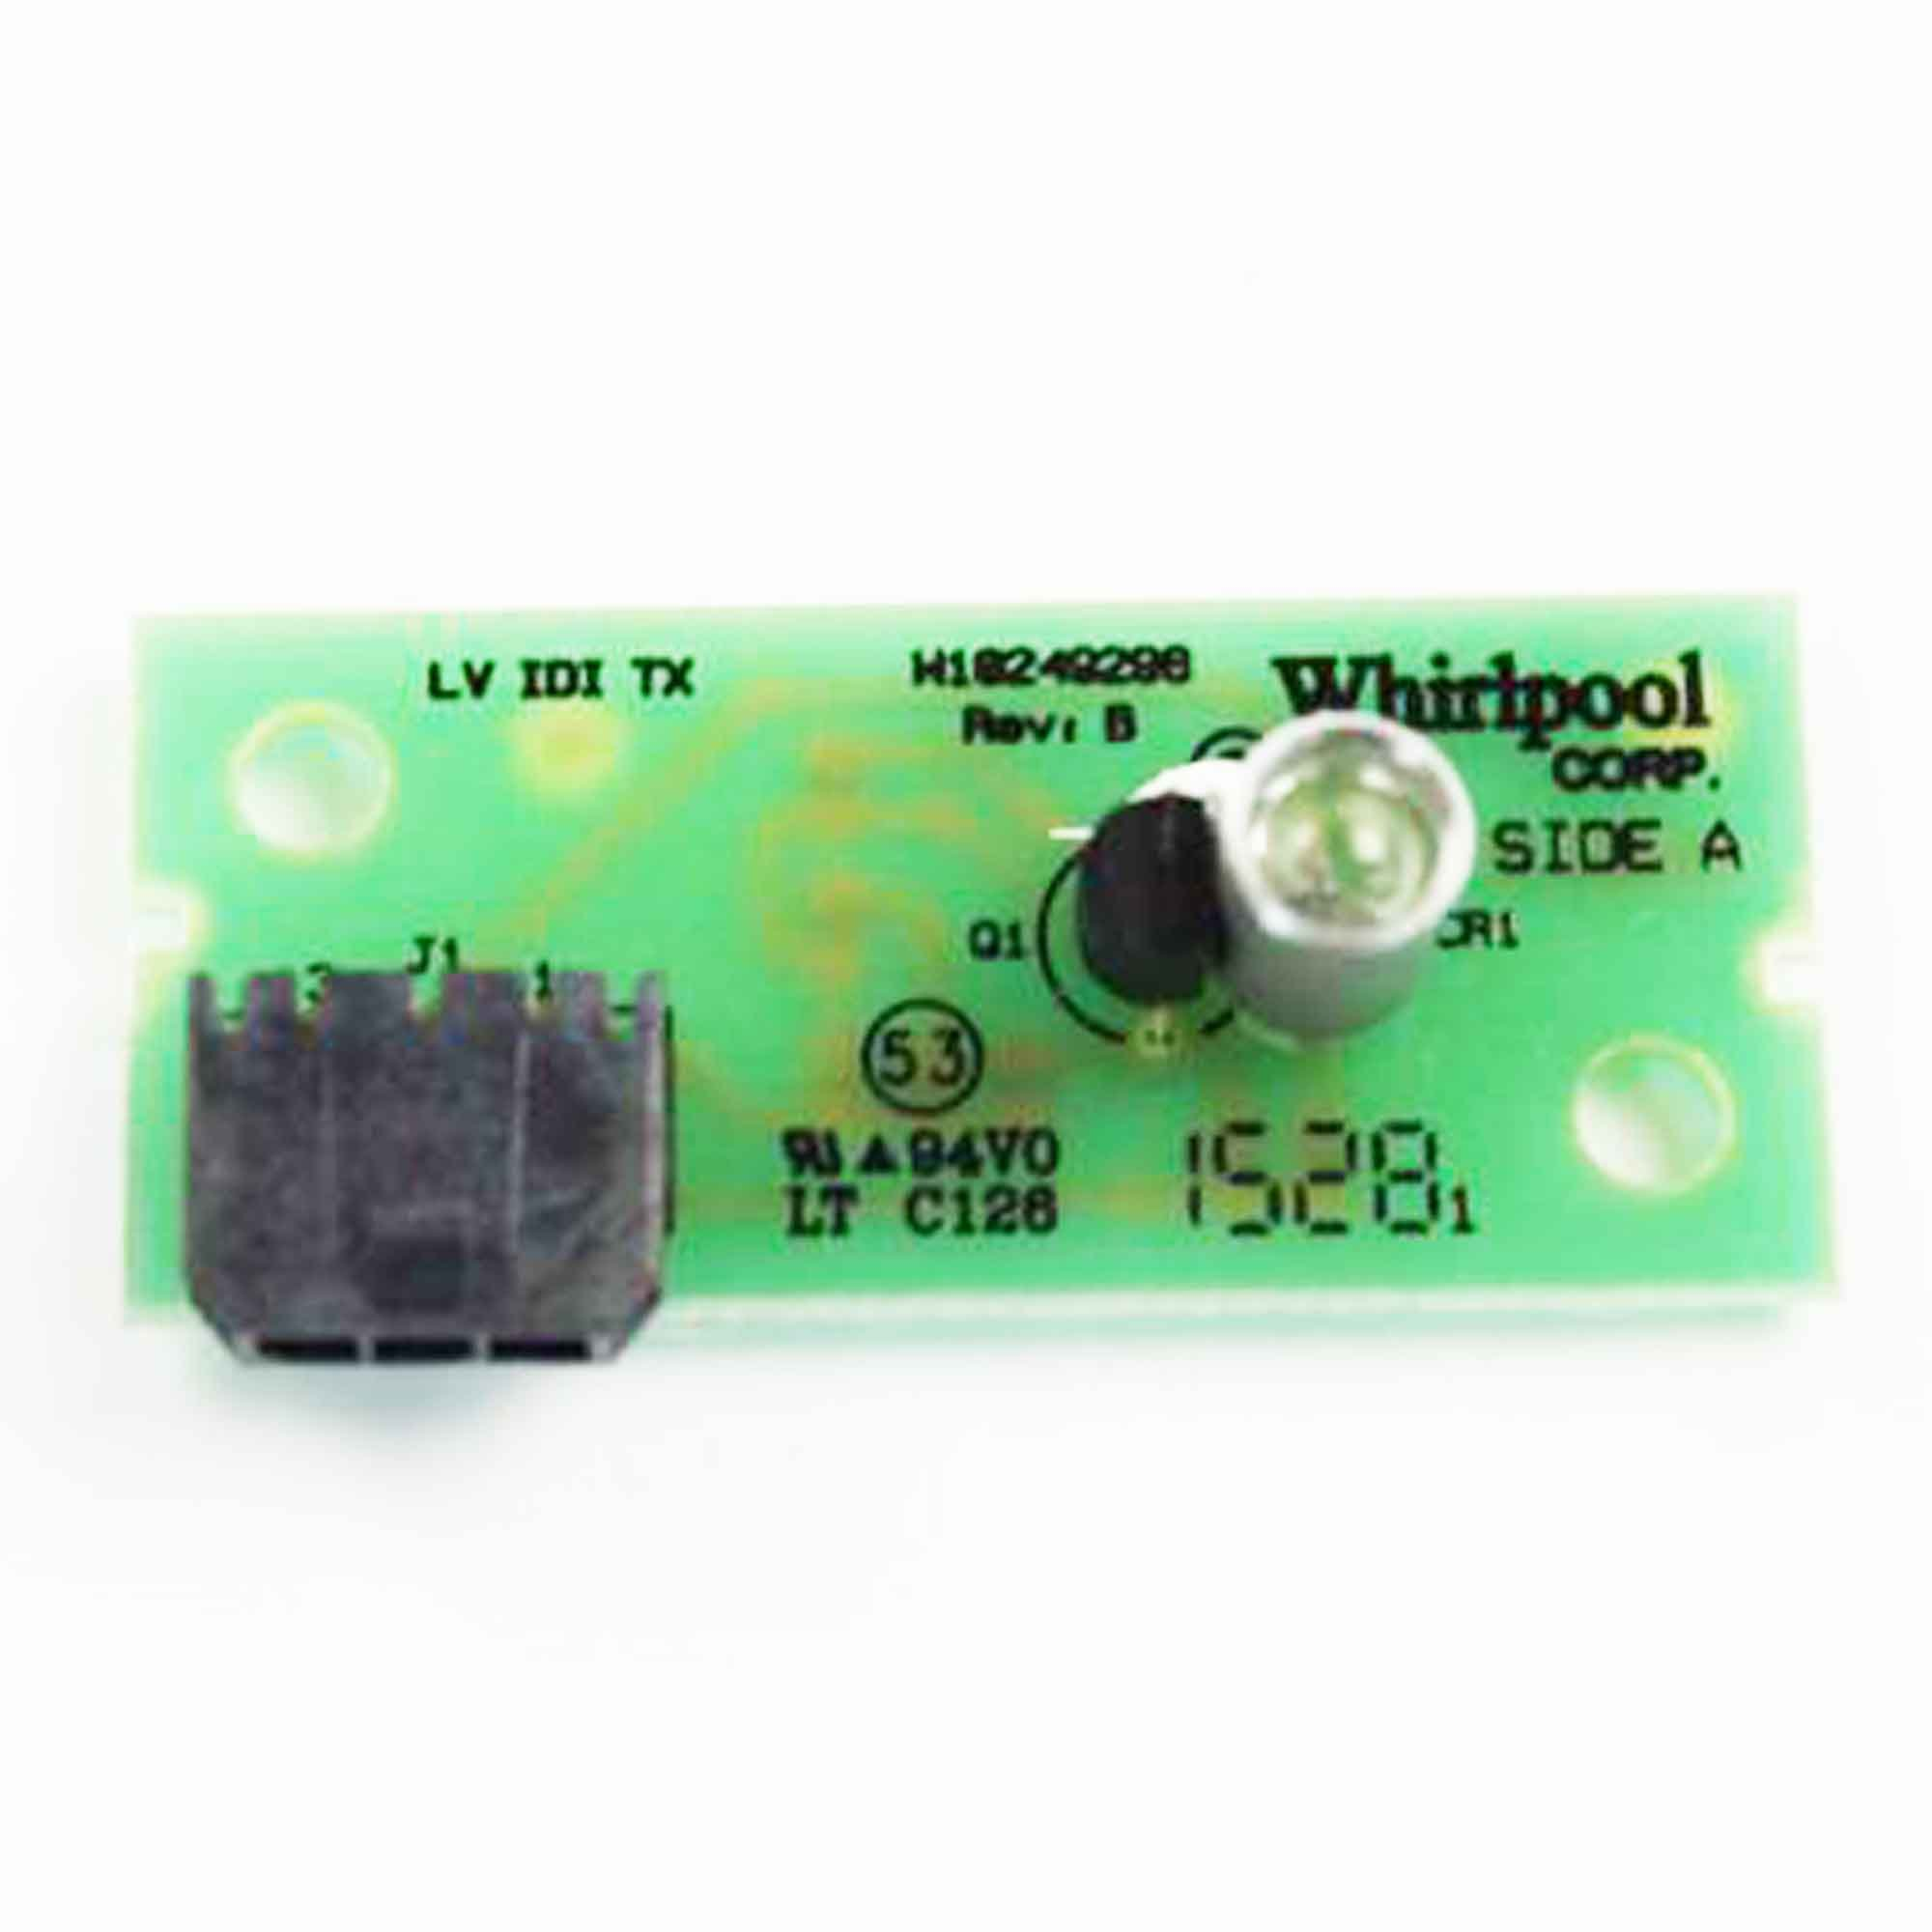 Whirlpool W10870822 Emitter Control Board, Gray by Whirlpool (Image #1)